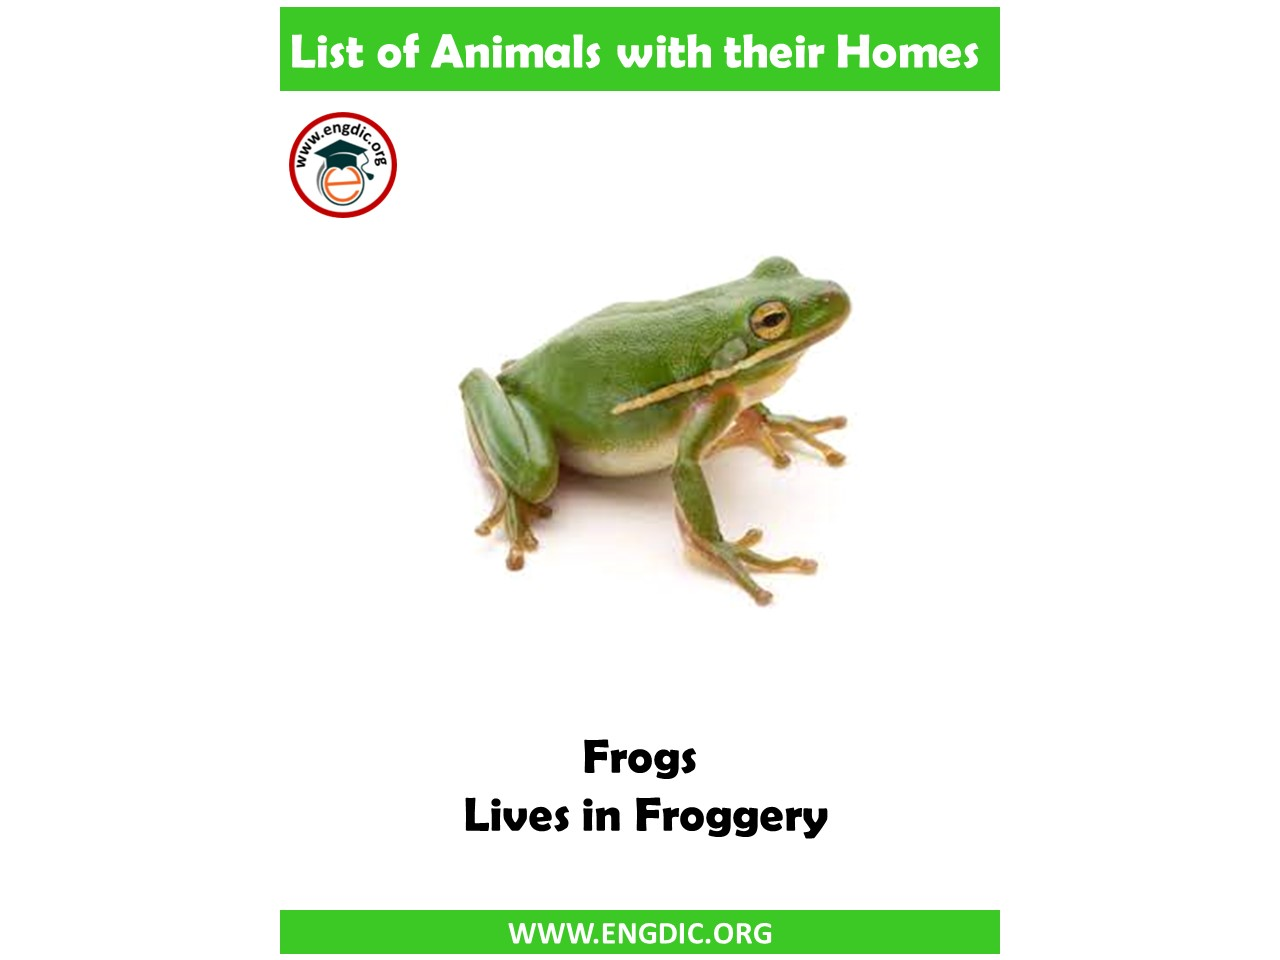 List of Animals and their Homes